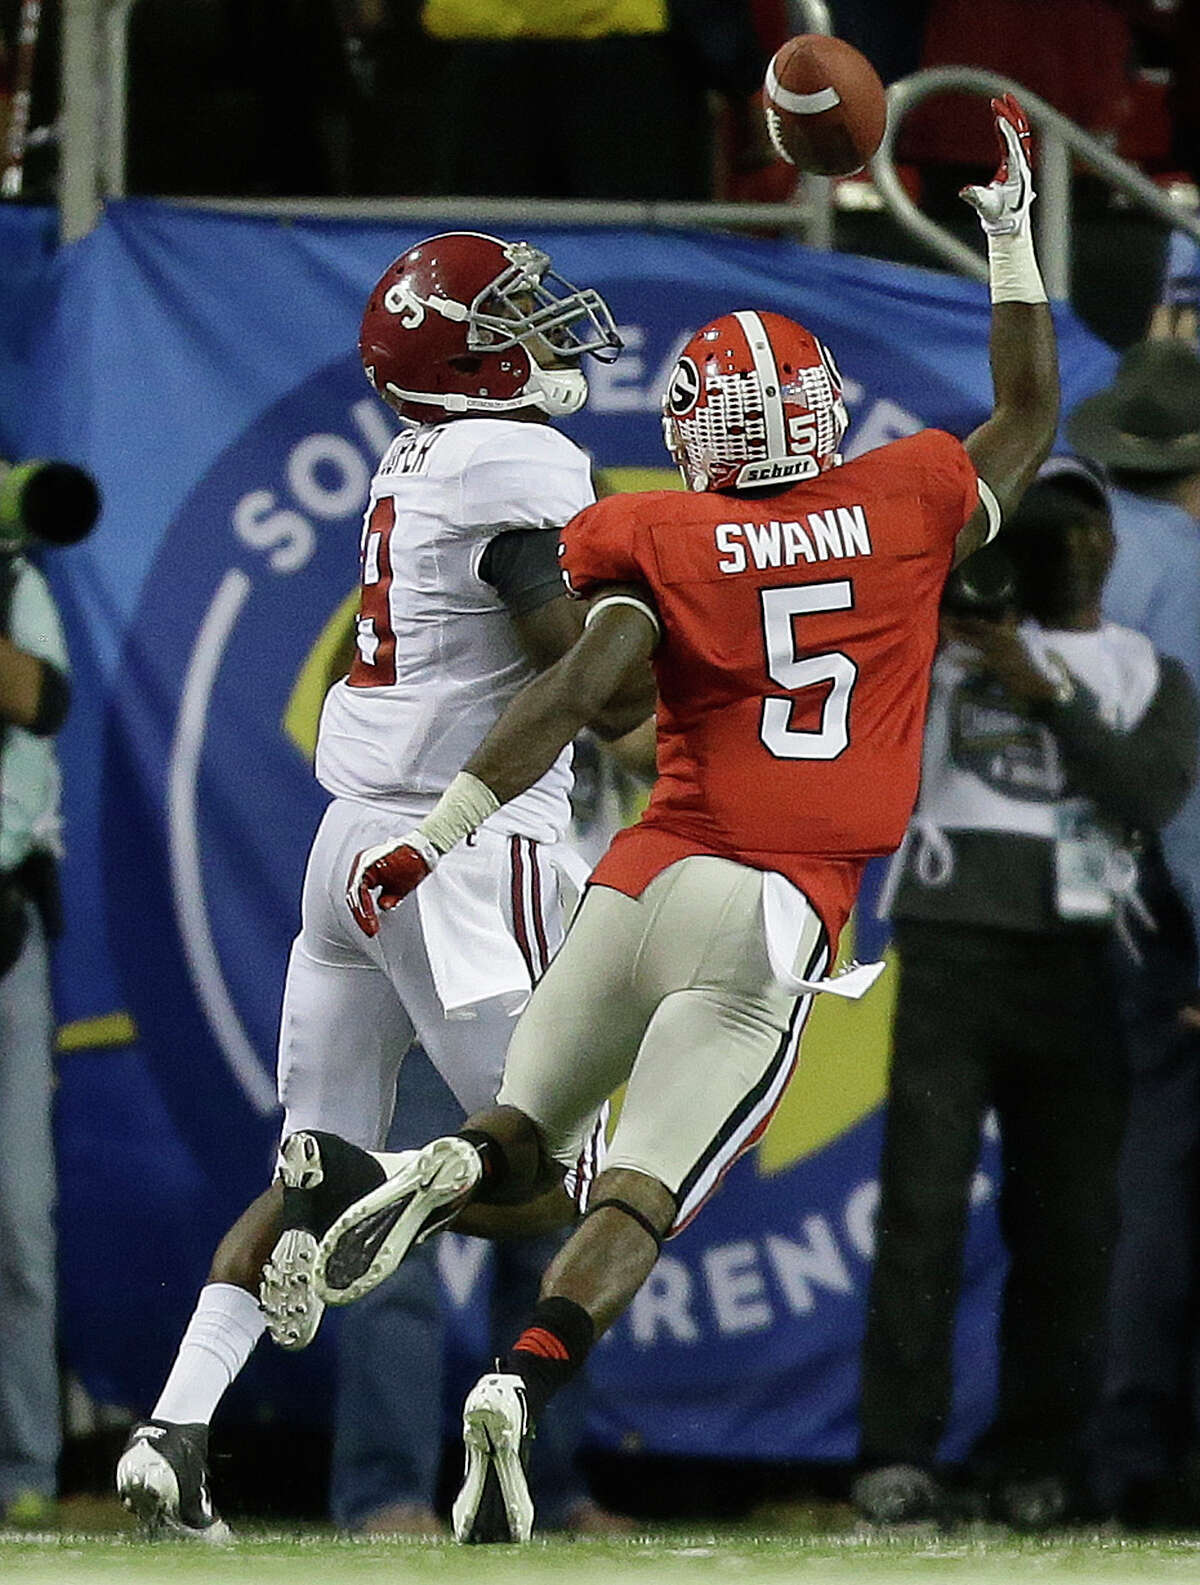 Alabama wide receiver Amari Cooper (9) makes a touchdown catch as Georgia defensive back Damian Swann (5) defends during the second half of the Southeastern Conference championship NCAA college football game, Saturday, Dec. 1, 2012, in Atlanta. (AP Photo/David Goldman)